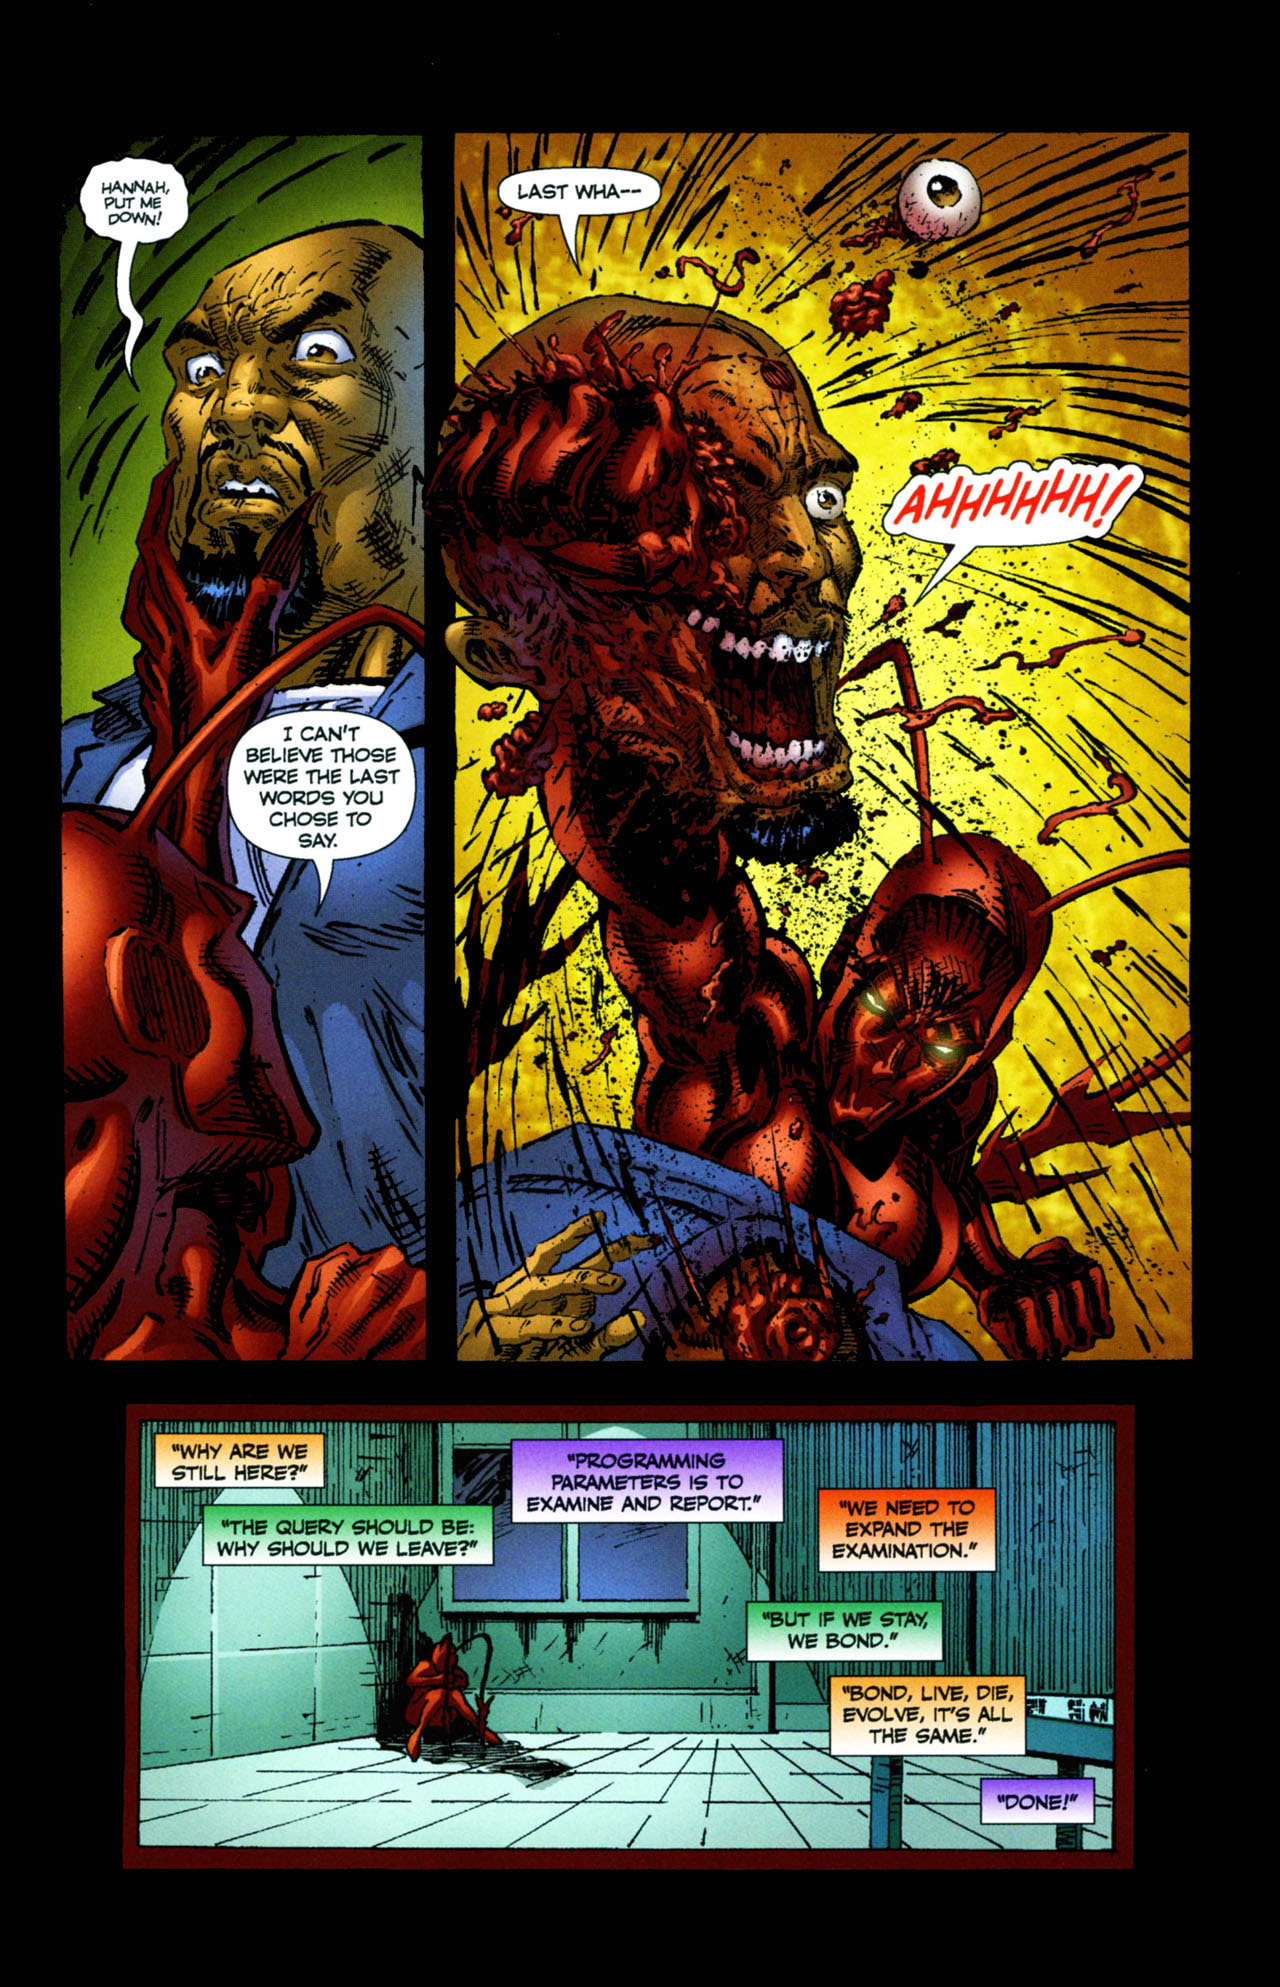 Read online Ant comic -  Issue #11 - 8